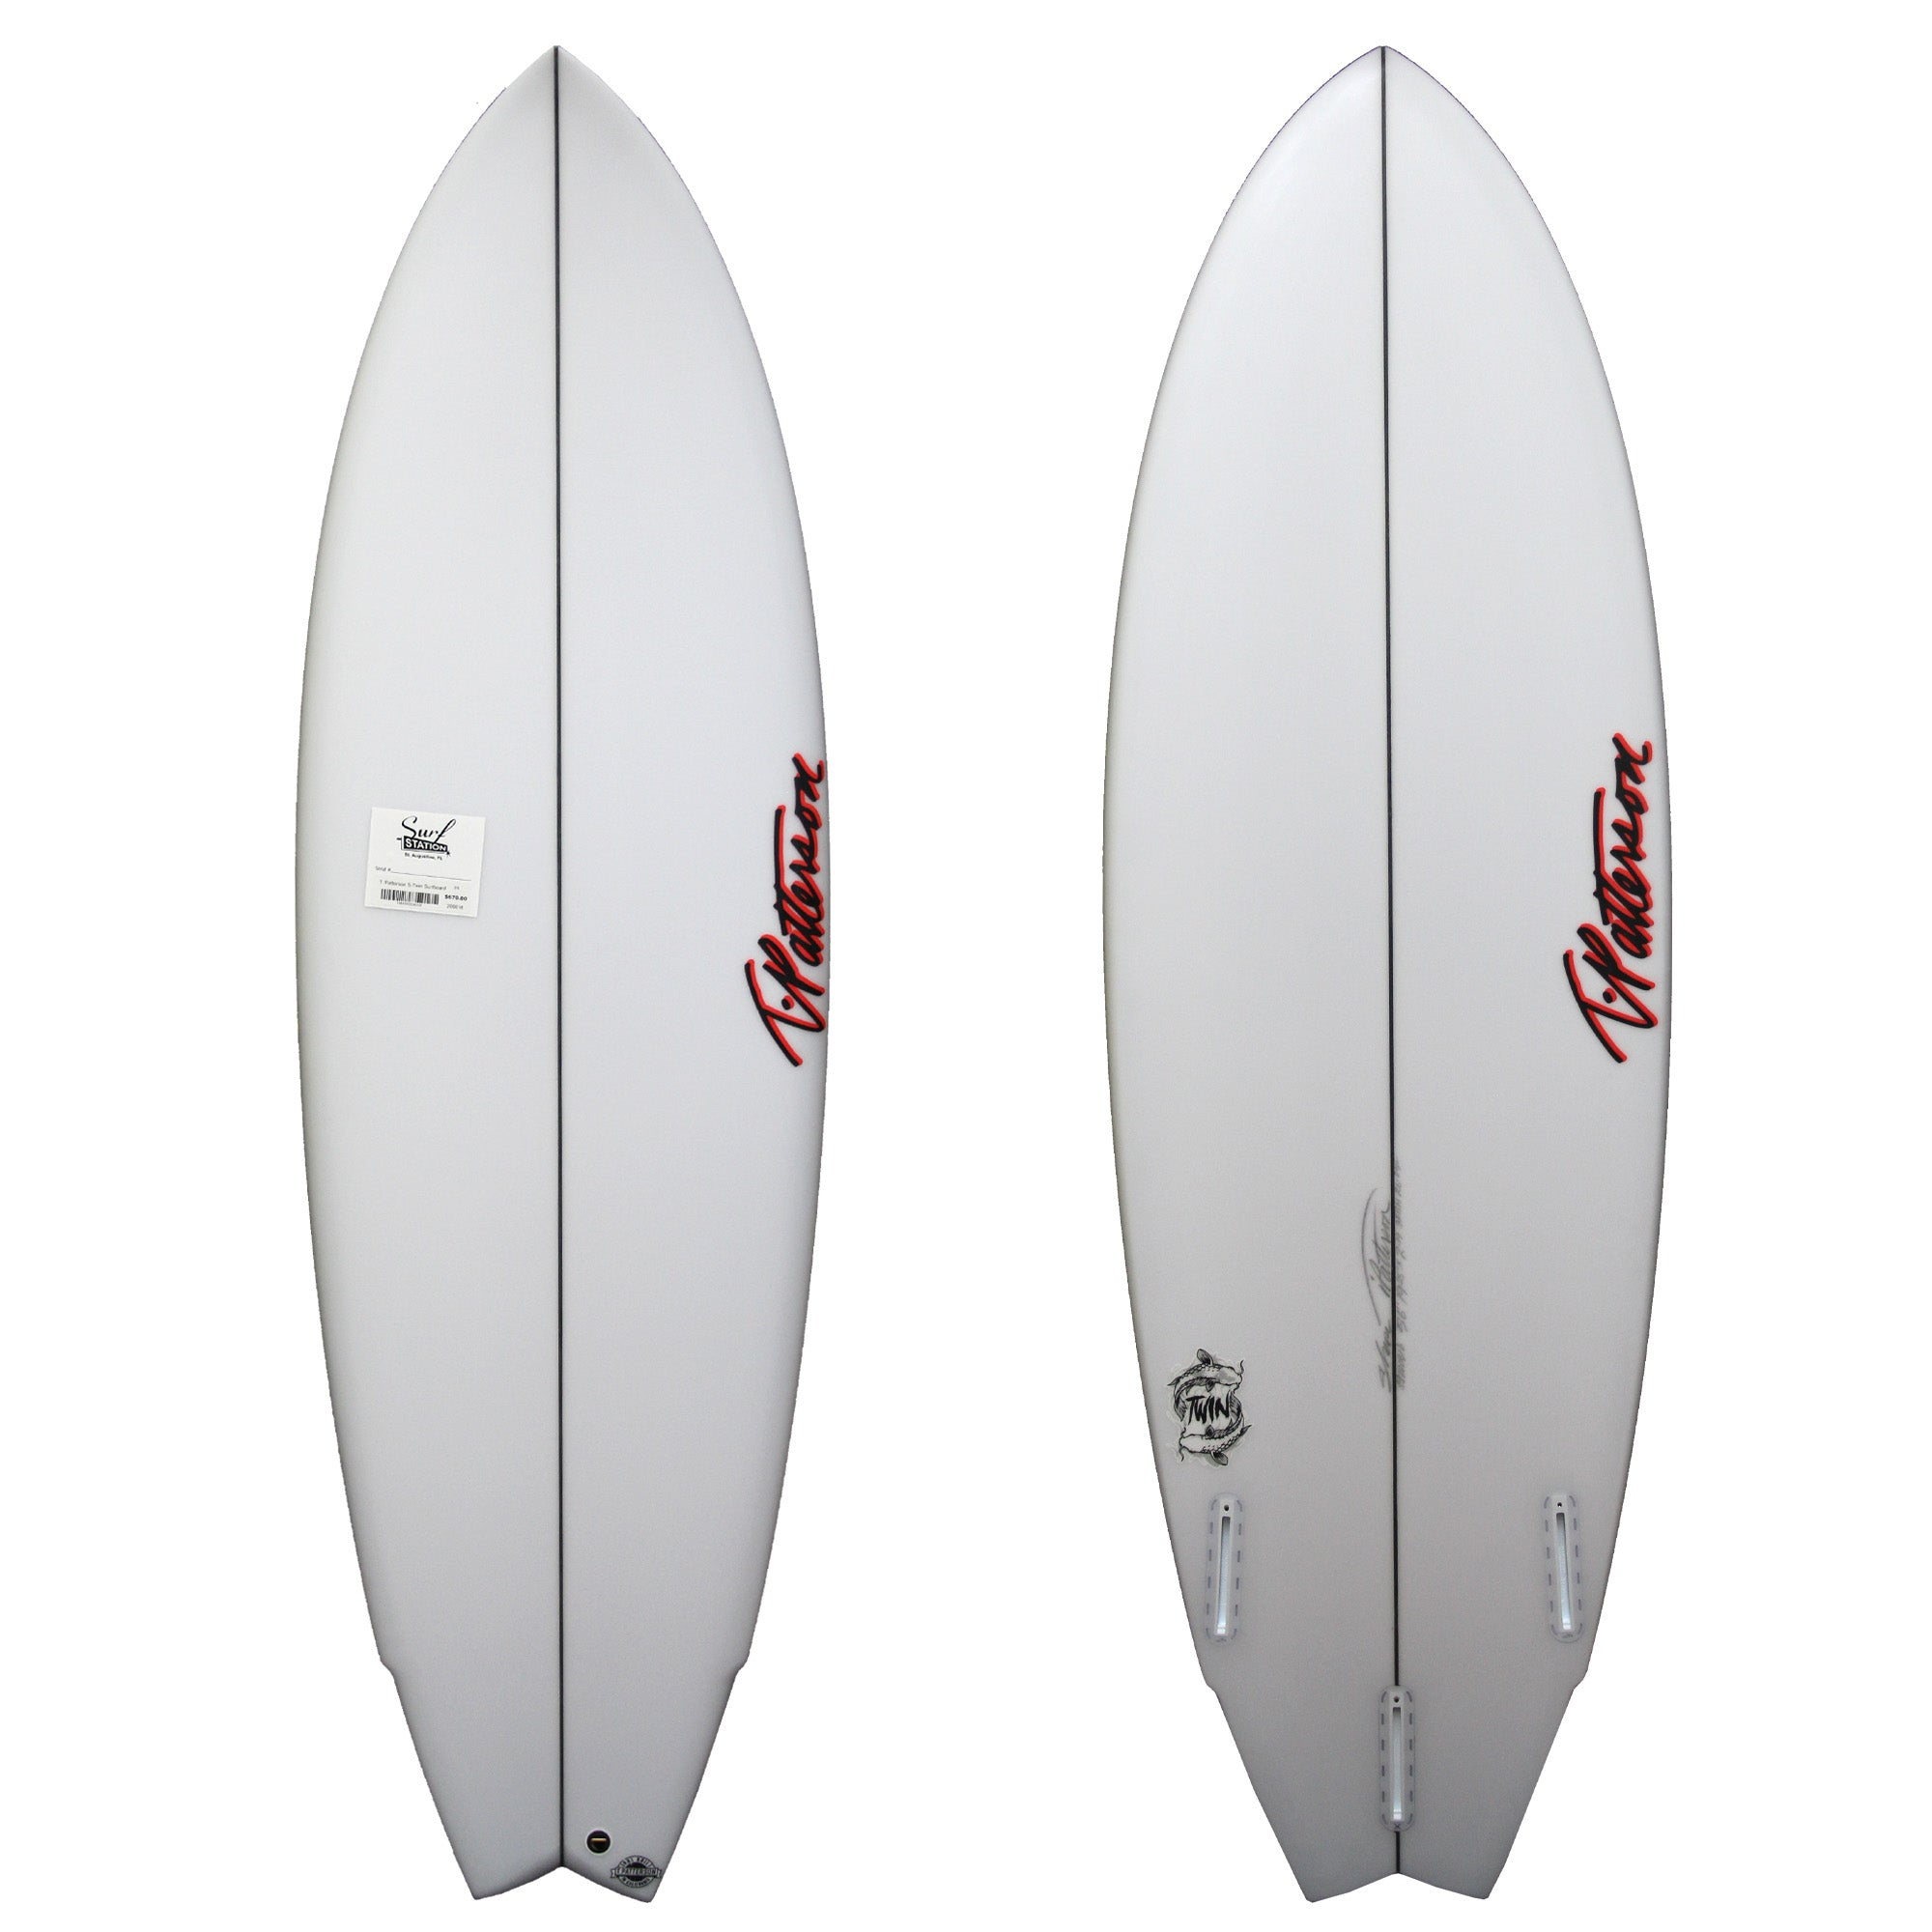 T. Patterson S-Twin Surfboard - Futures